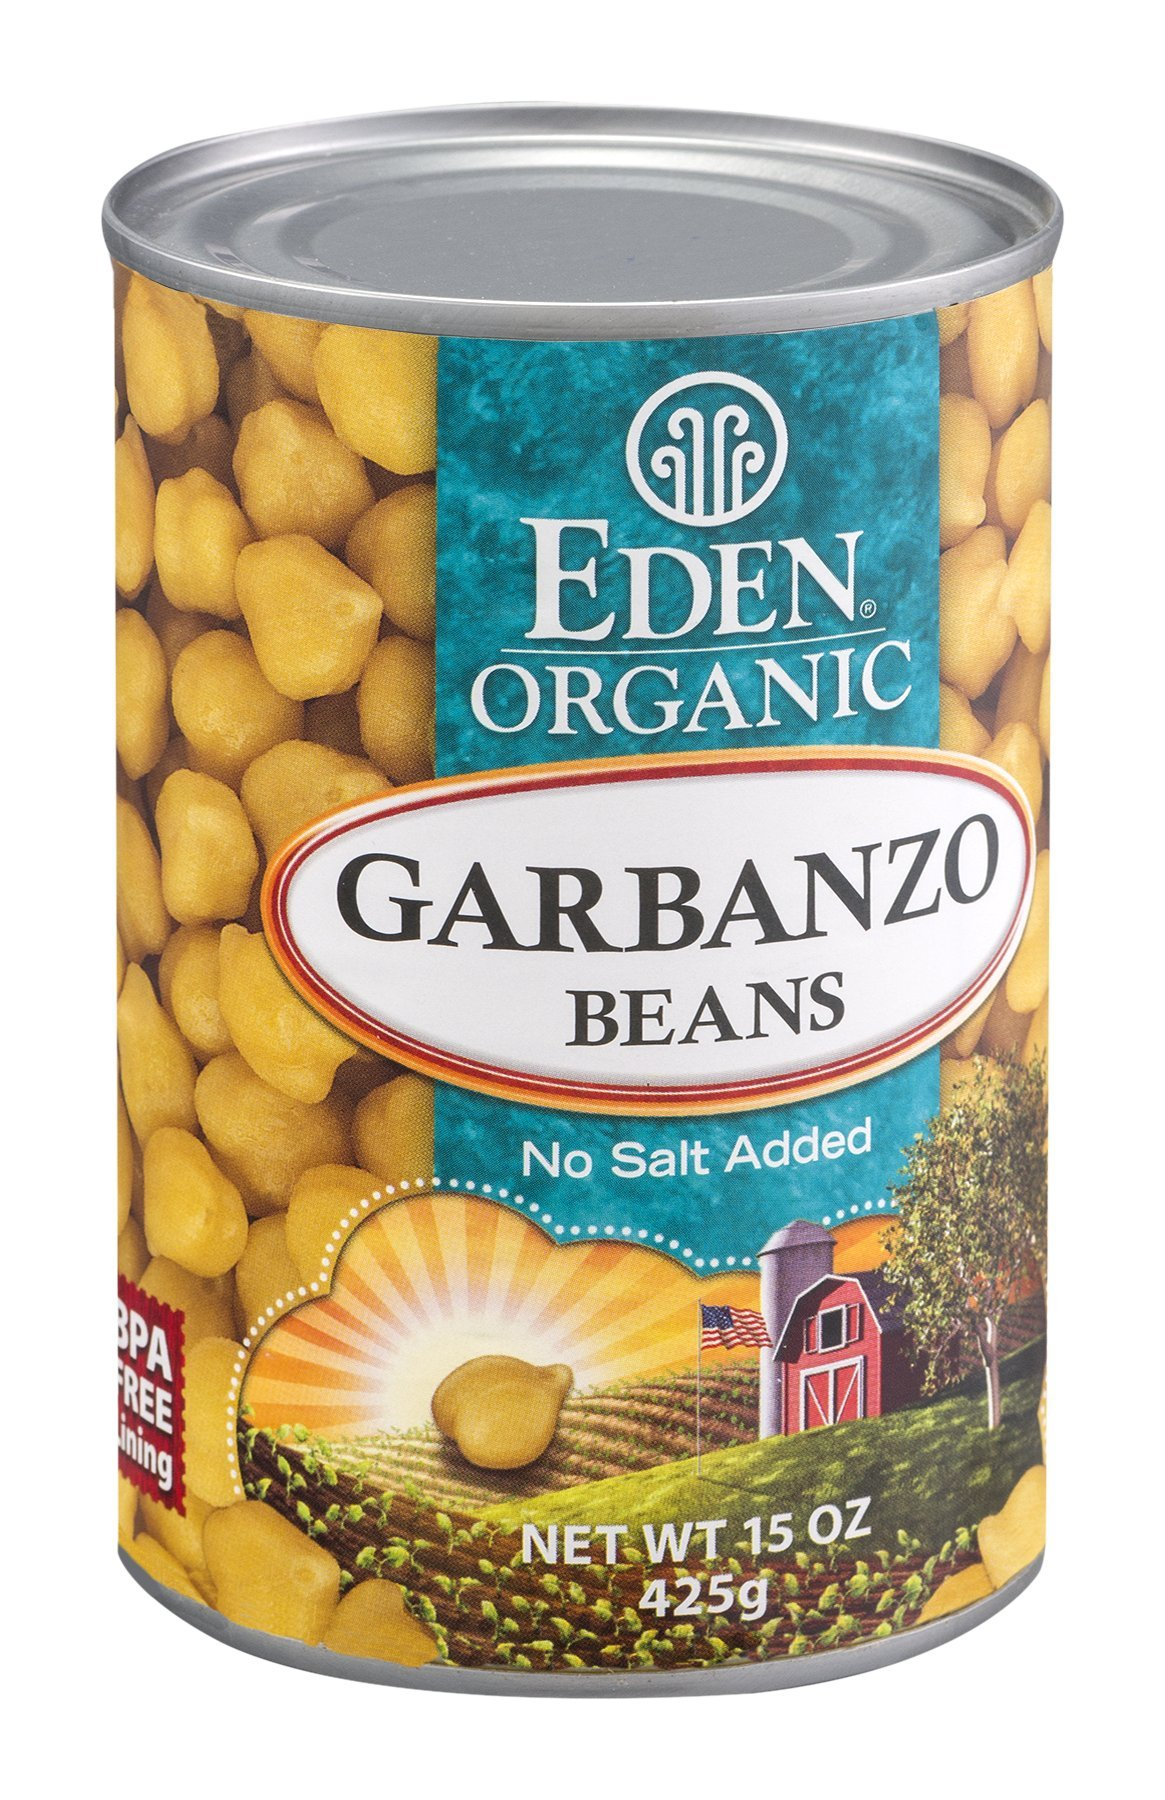 Eden Organic Garbanzo Beans, No Salt Added, 15-Ounce Cans (Pack of 12) (Value Bulk Multi-pack)